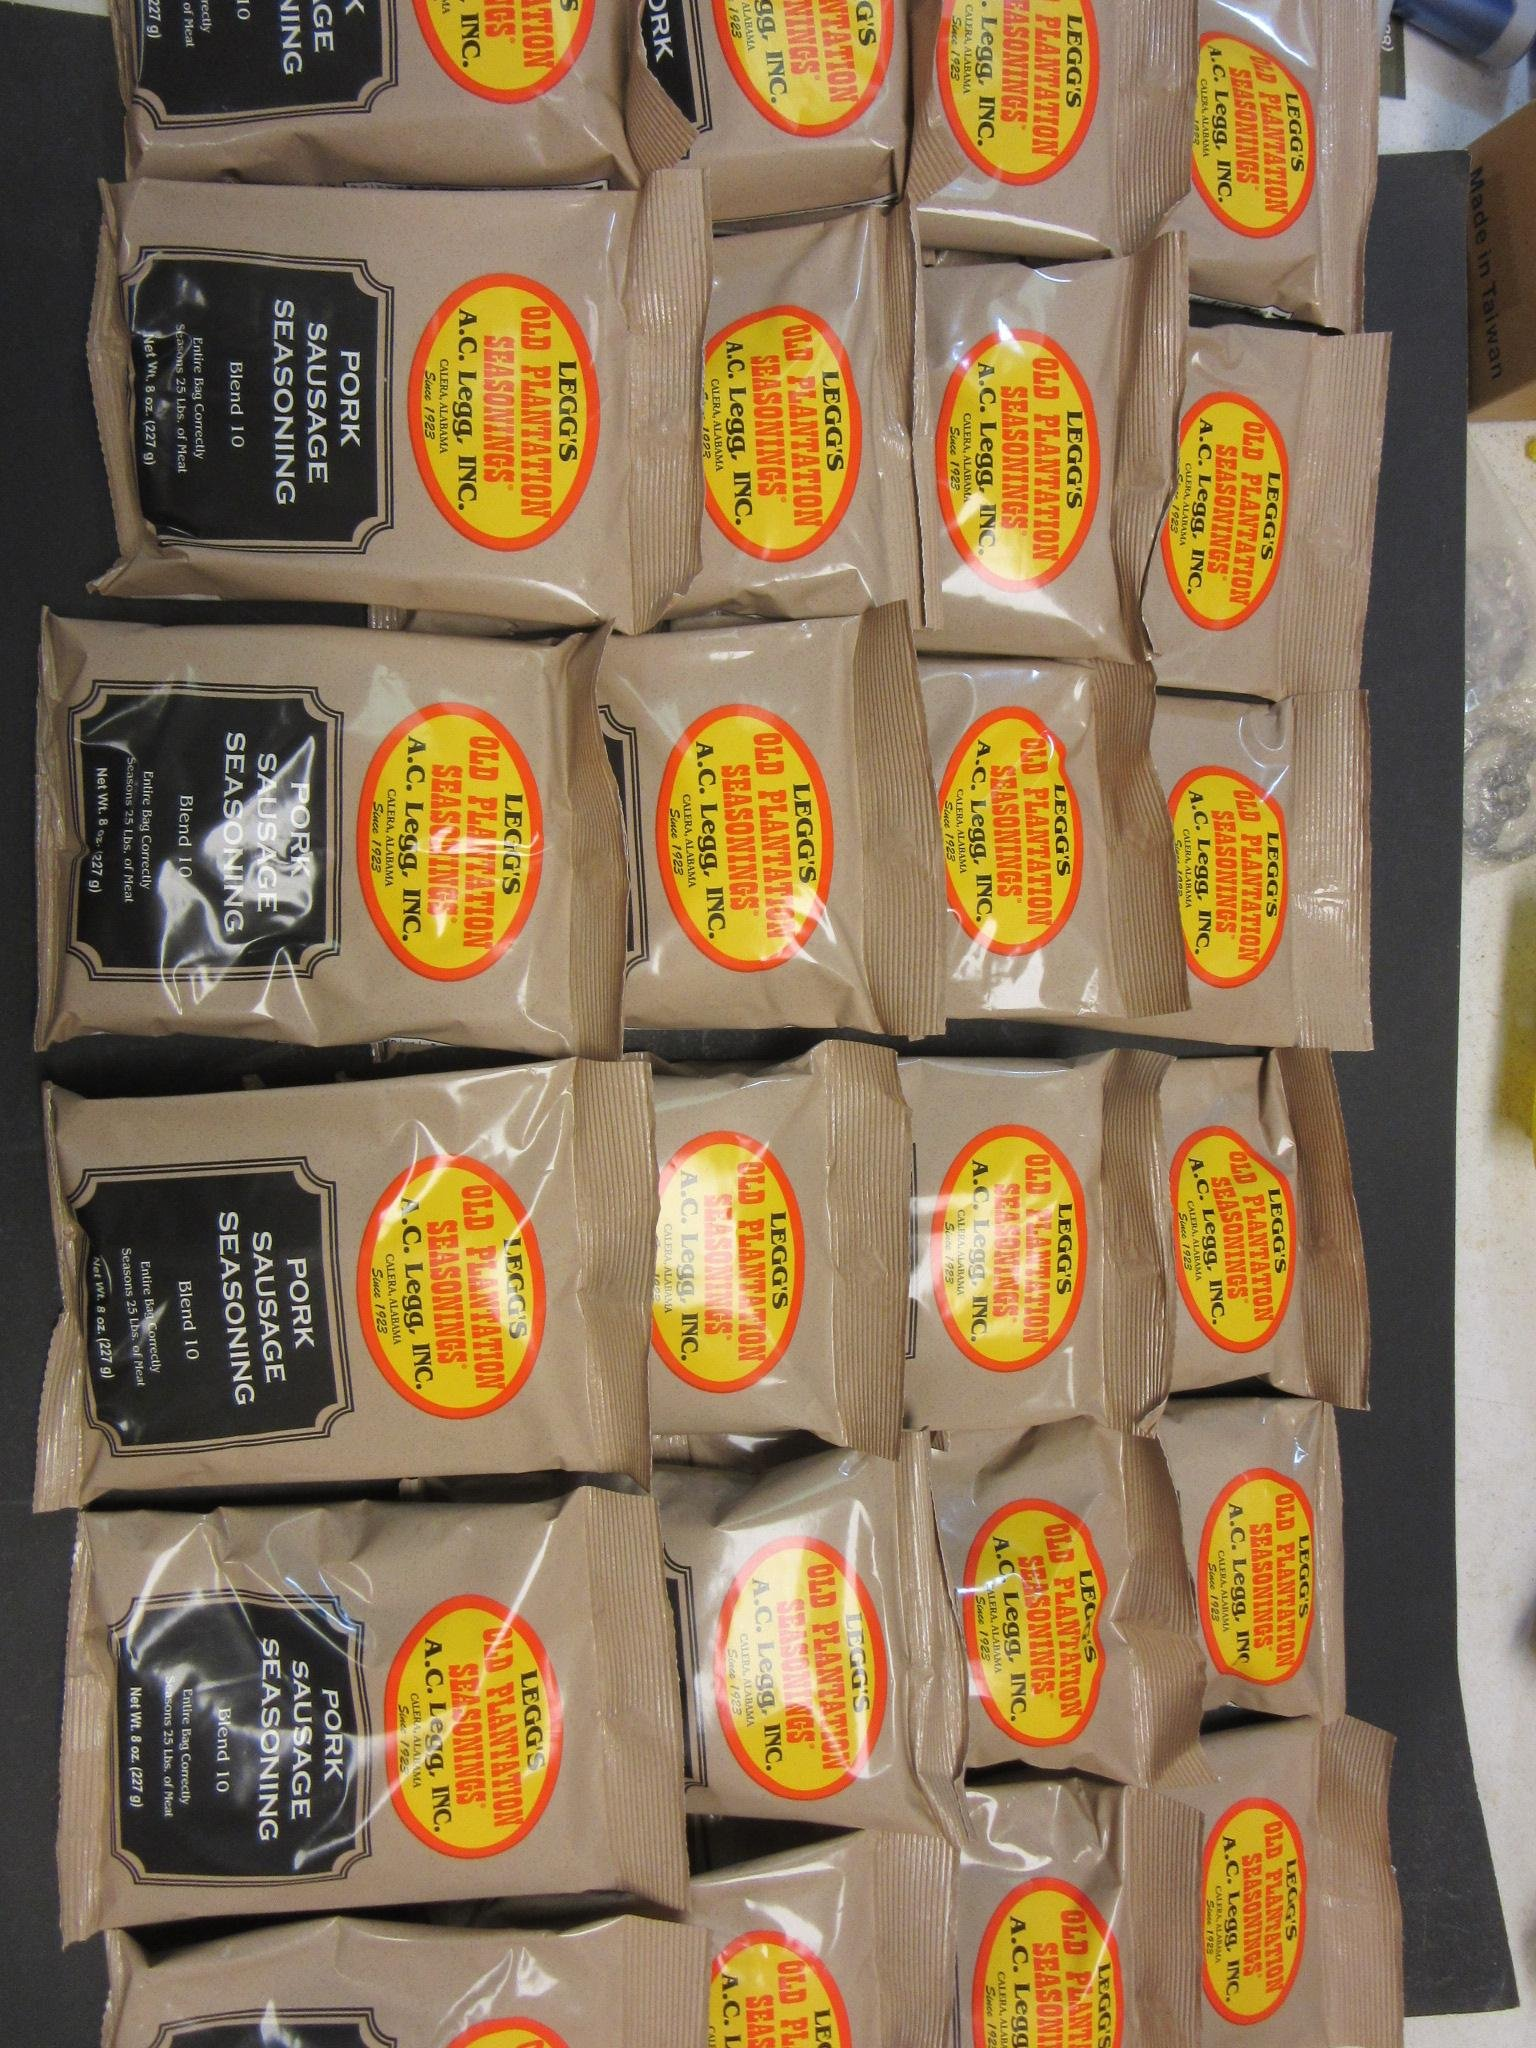 One Full Case of Old Plantation breakfast sausage seasoning. Blend #10 A C Leggs. Ships from Smokehouse Chef in Texas. 24 bags for 600 lbs of sausage. Price is 3.99 per bag